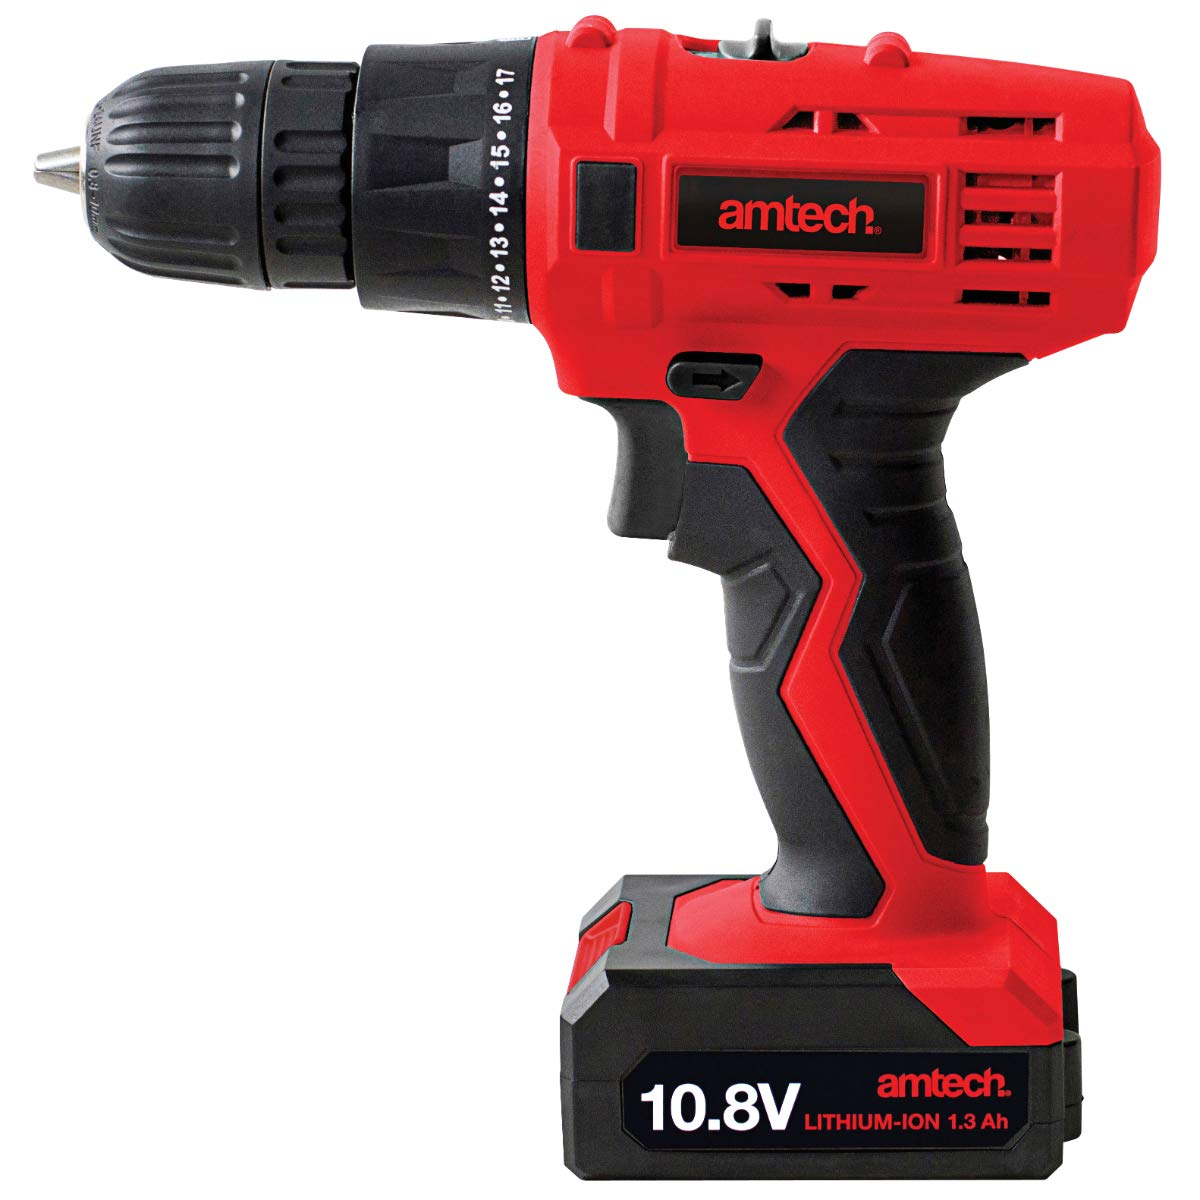 Amtech V6505 10.8-Volt Li-Ion Cordless Rechargeable Drill Driver 2 Year Warranty AM-V6505